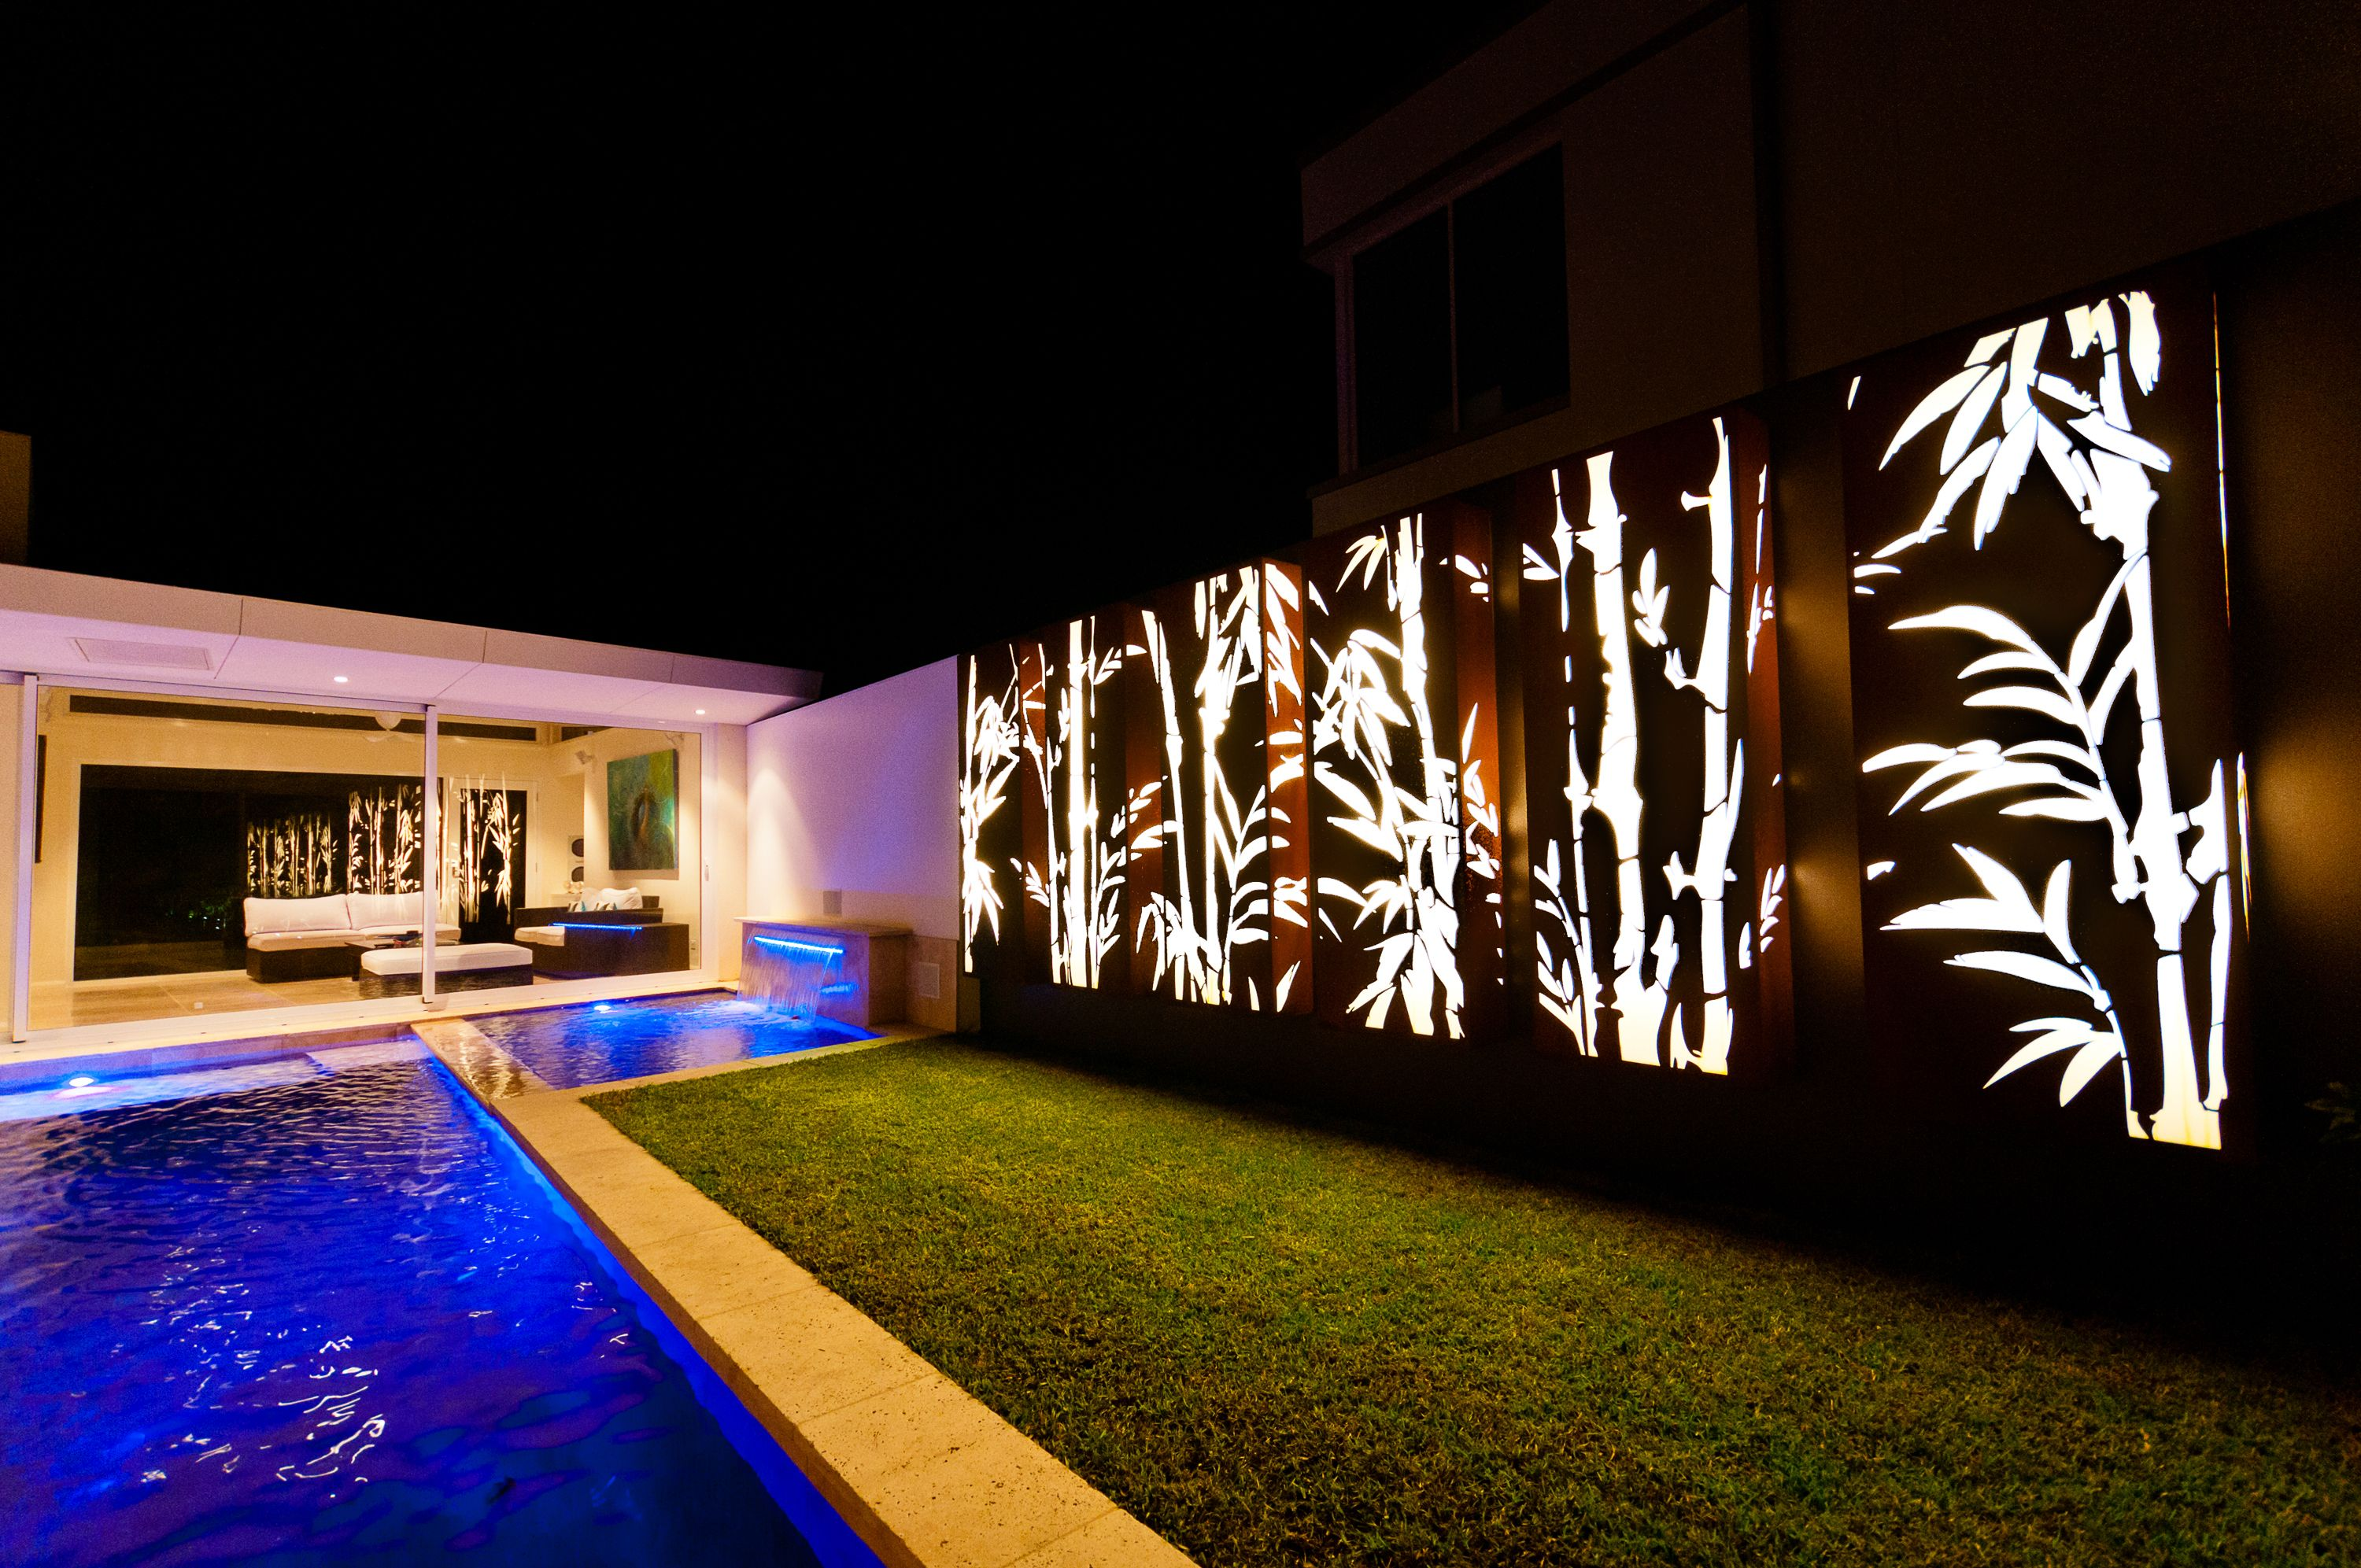 Corten Steel Light Feature Panel Boasting Lump S Bamboo